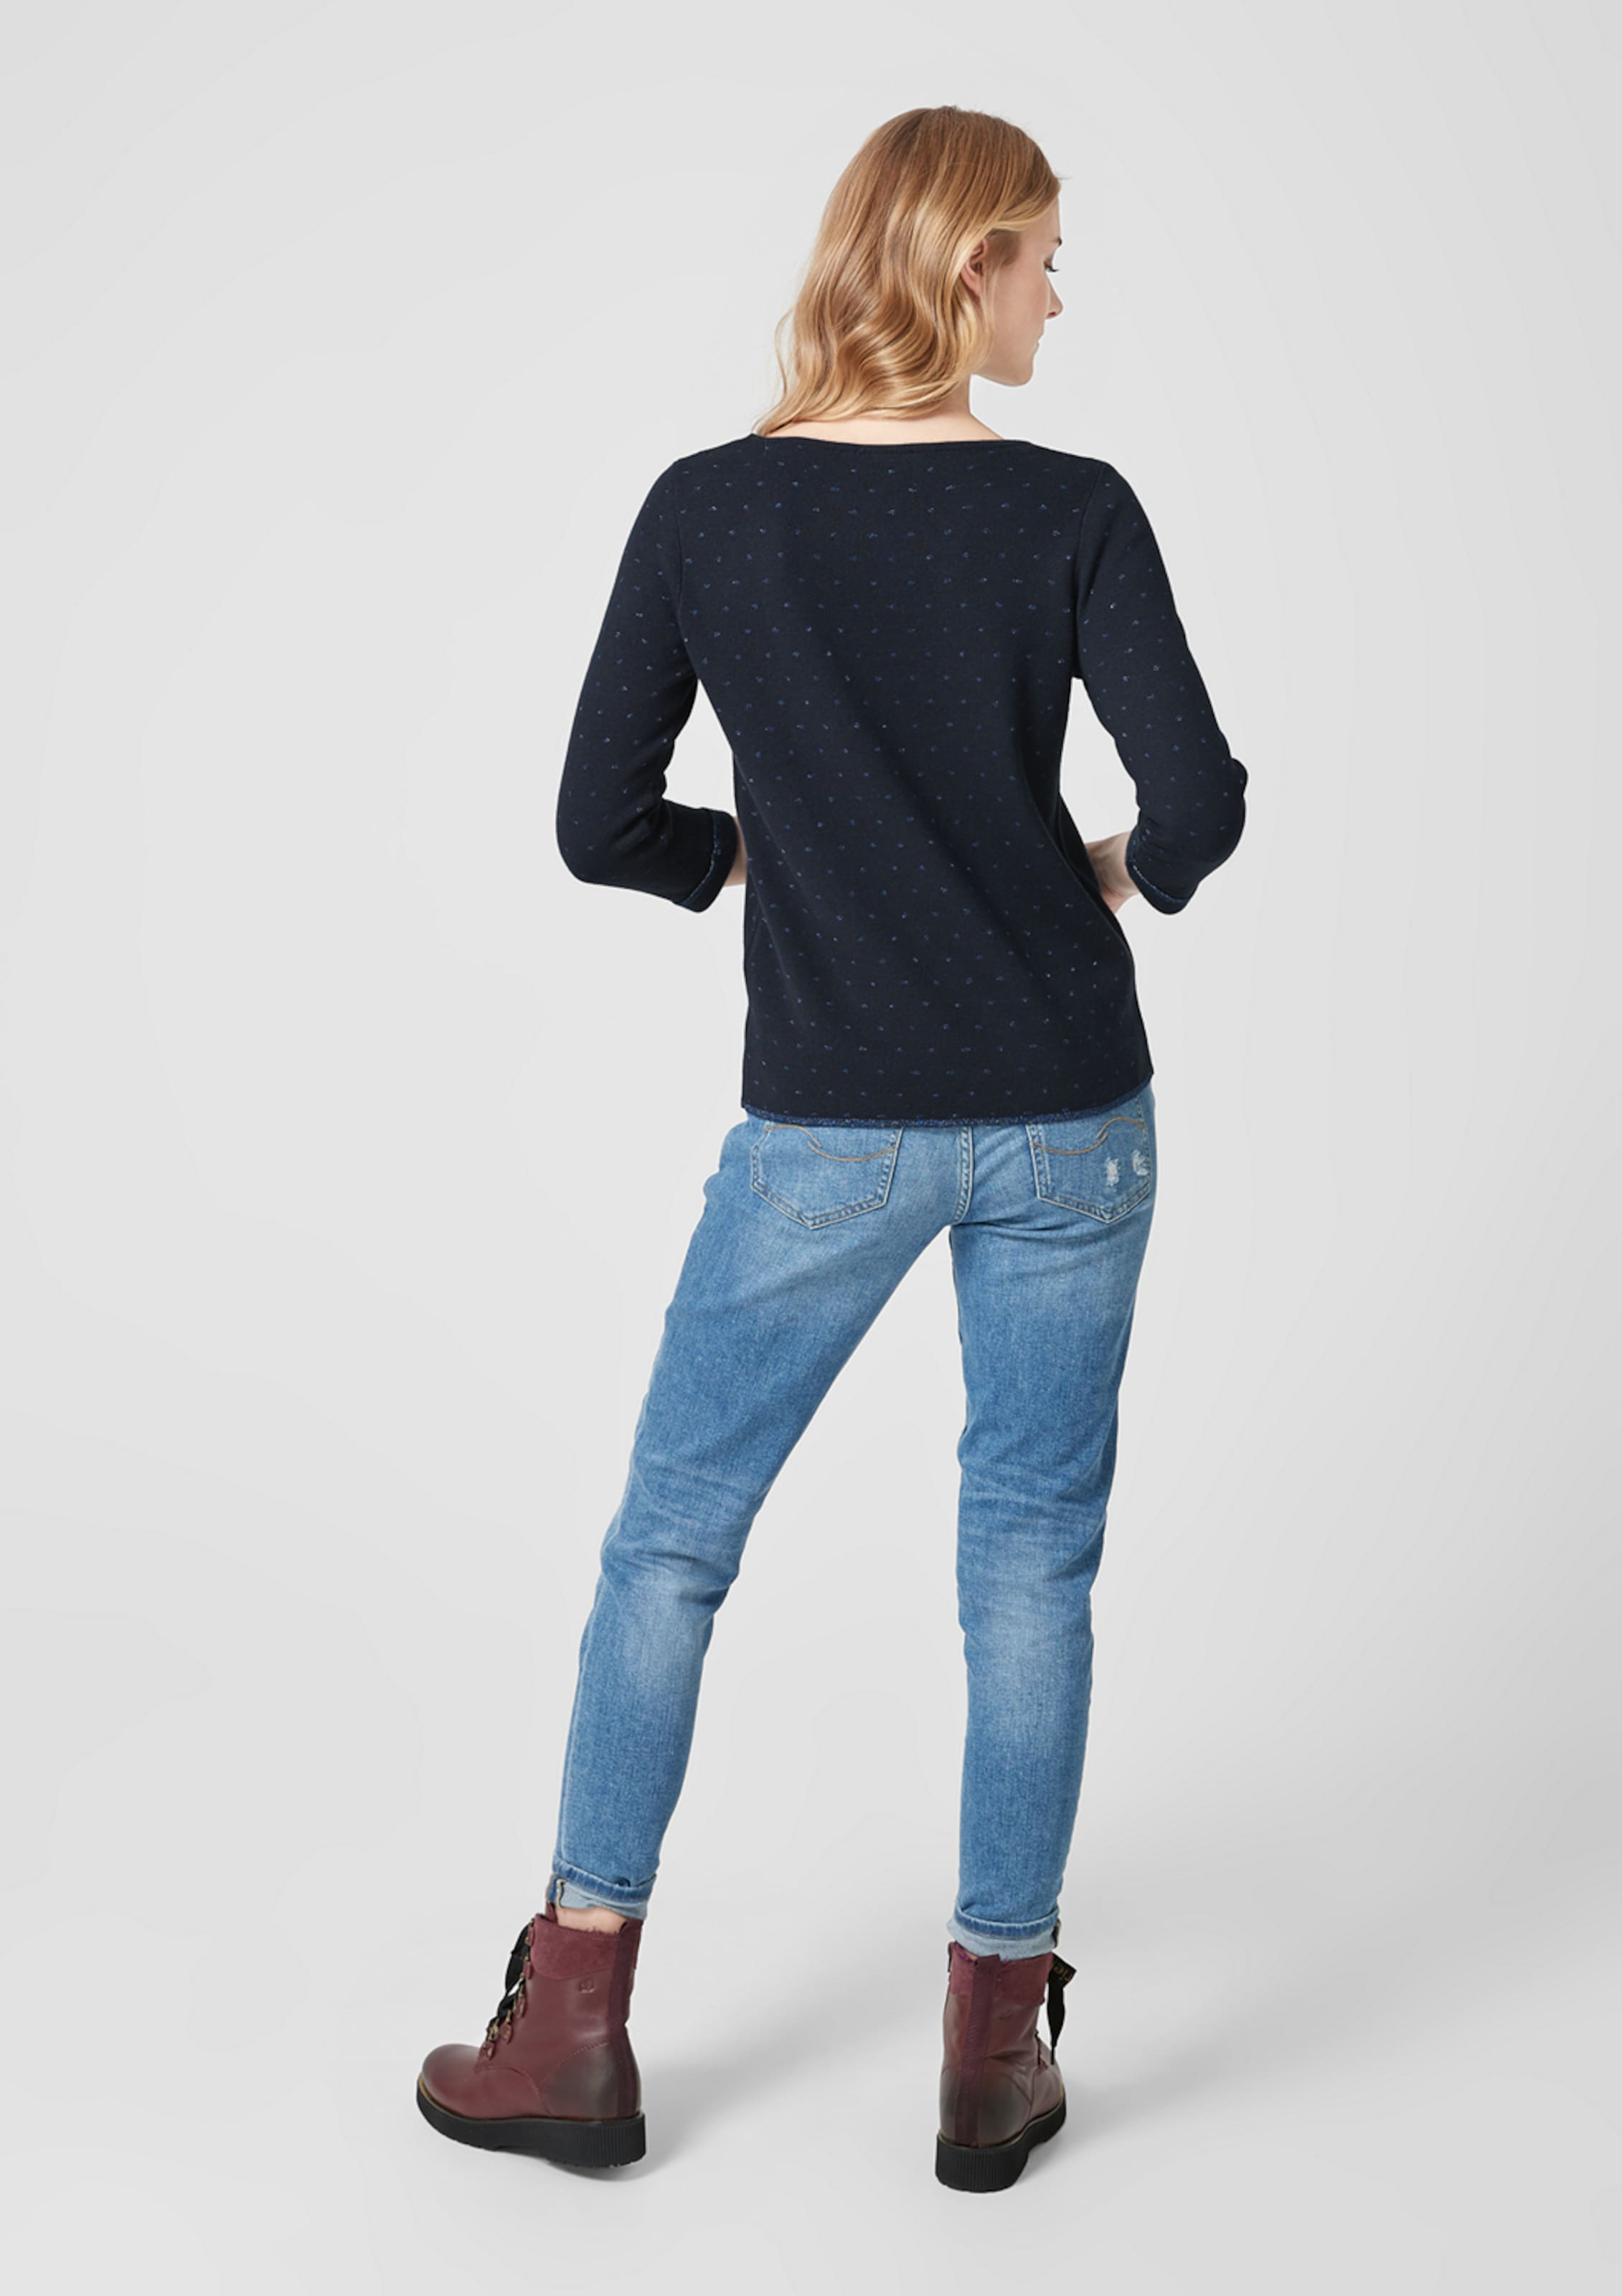 Red S BlauDunkelblau oliver Label Pullover In T3lFuK1Jc